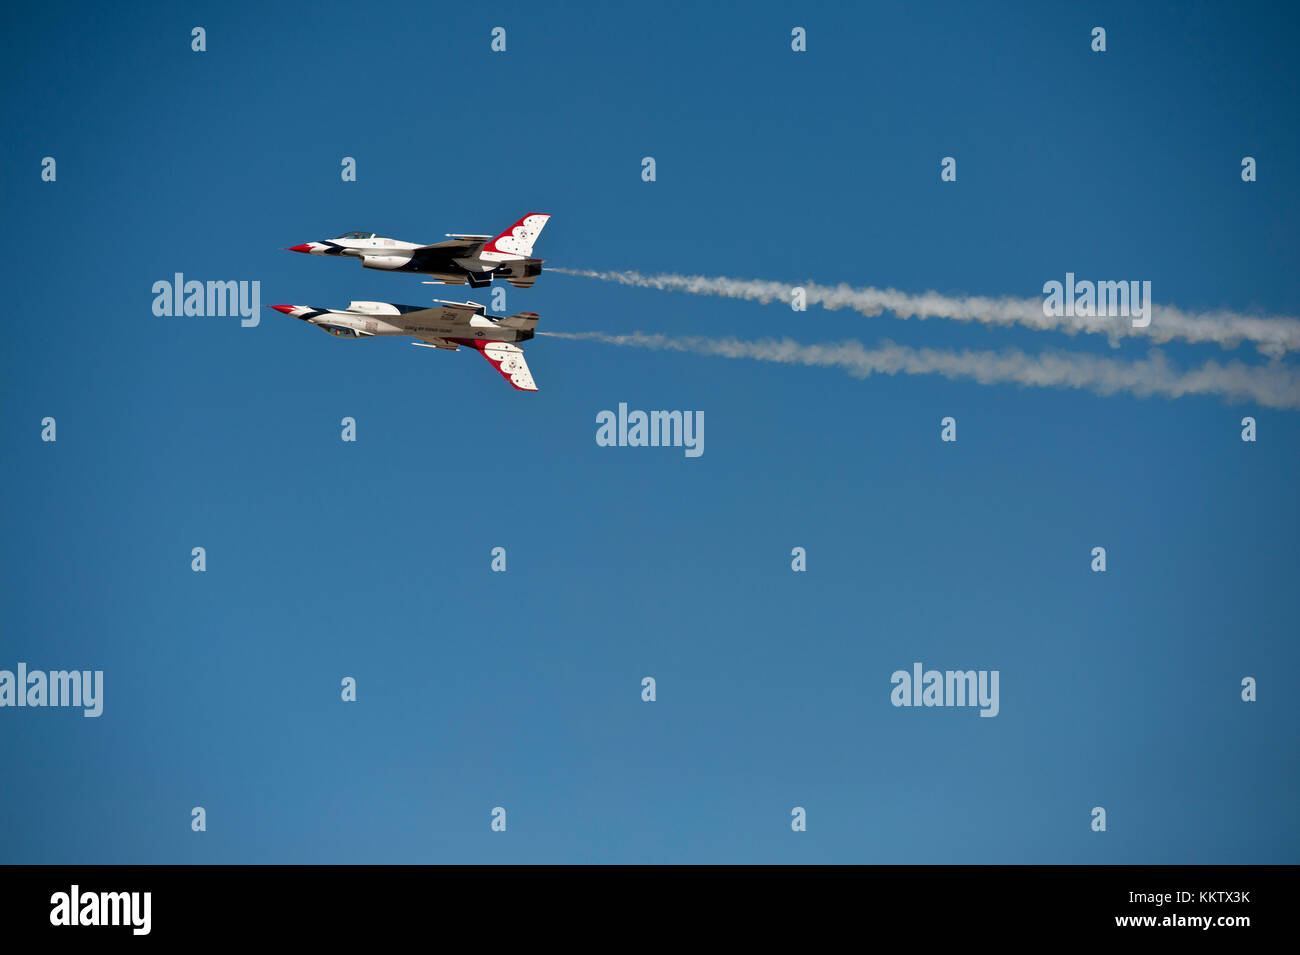 USAF F-16 Thunderbirds performing a Reflection Pass at Gowen Thunder air show on October 14 2017 - Stock Image